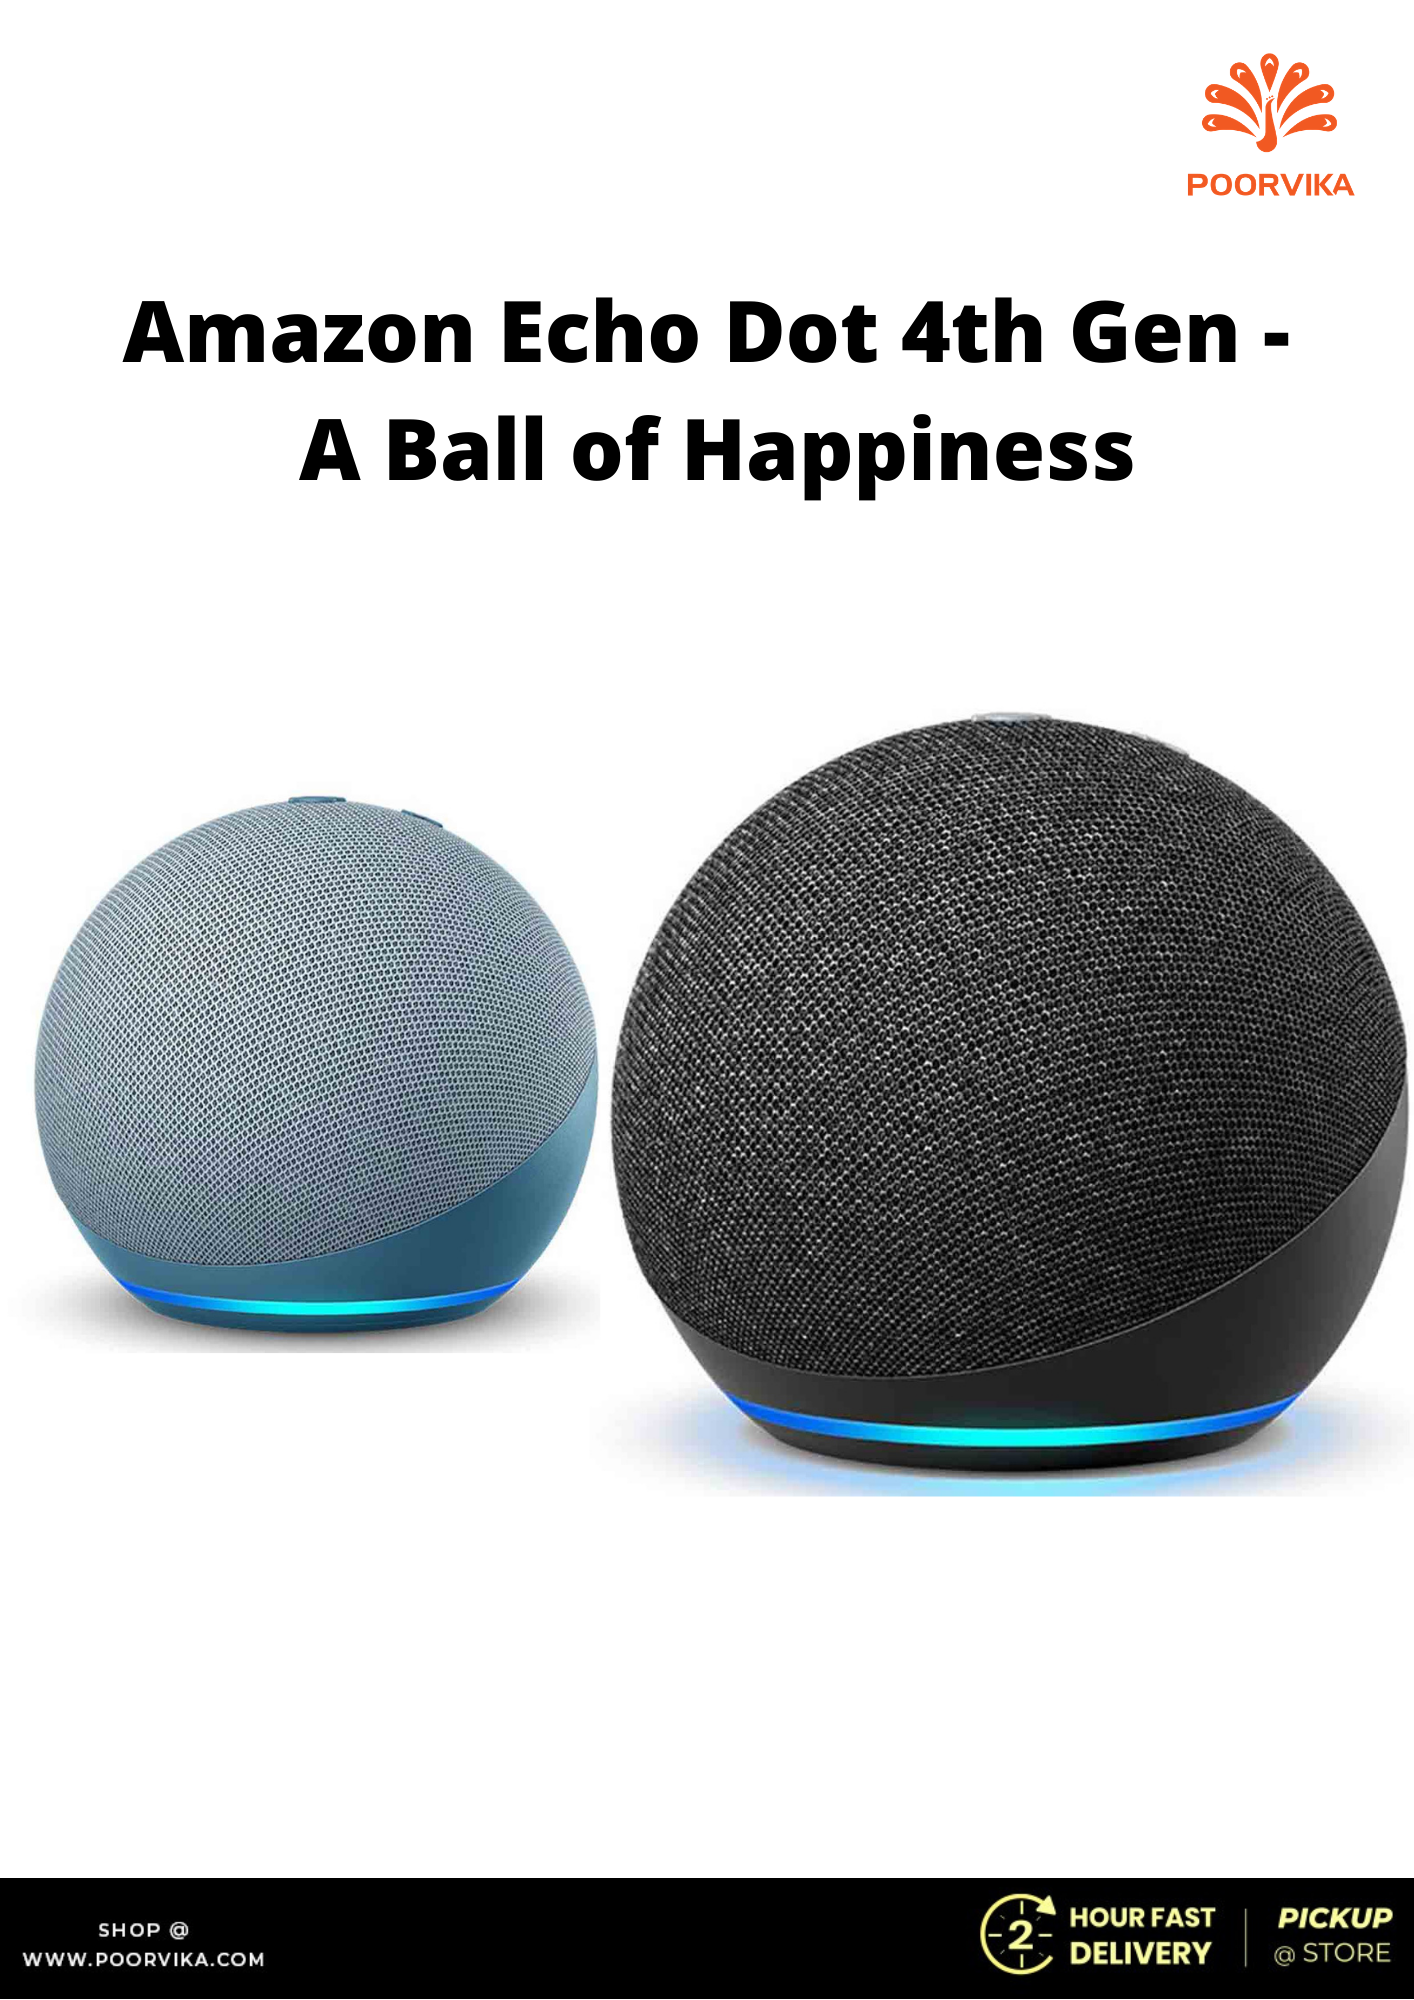 Amazon-Echo-Dot-4th-Gen-A-Ball-of-Happiness-poorvika-mobiles